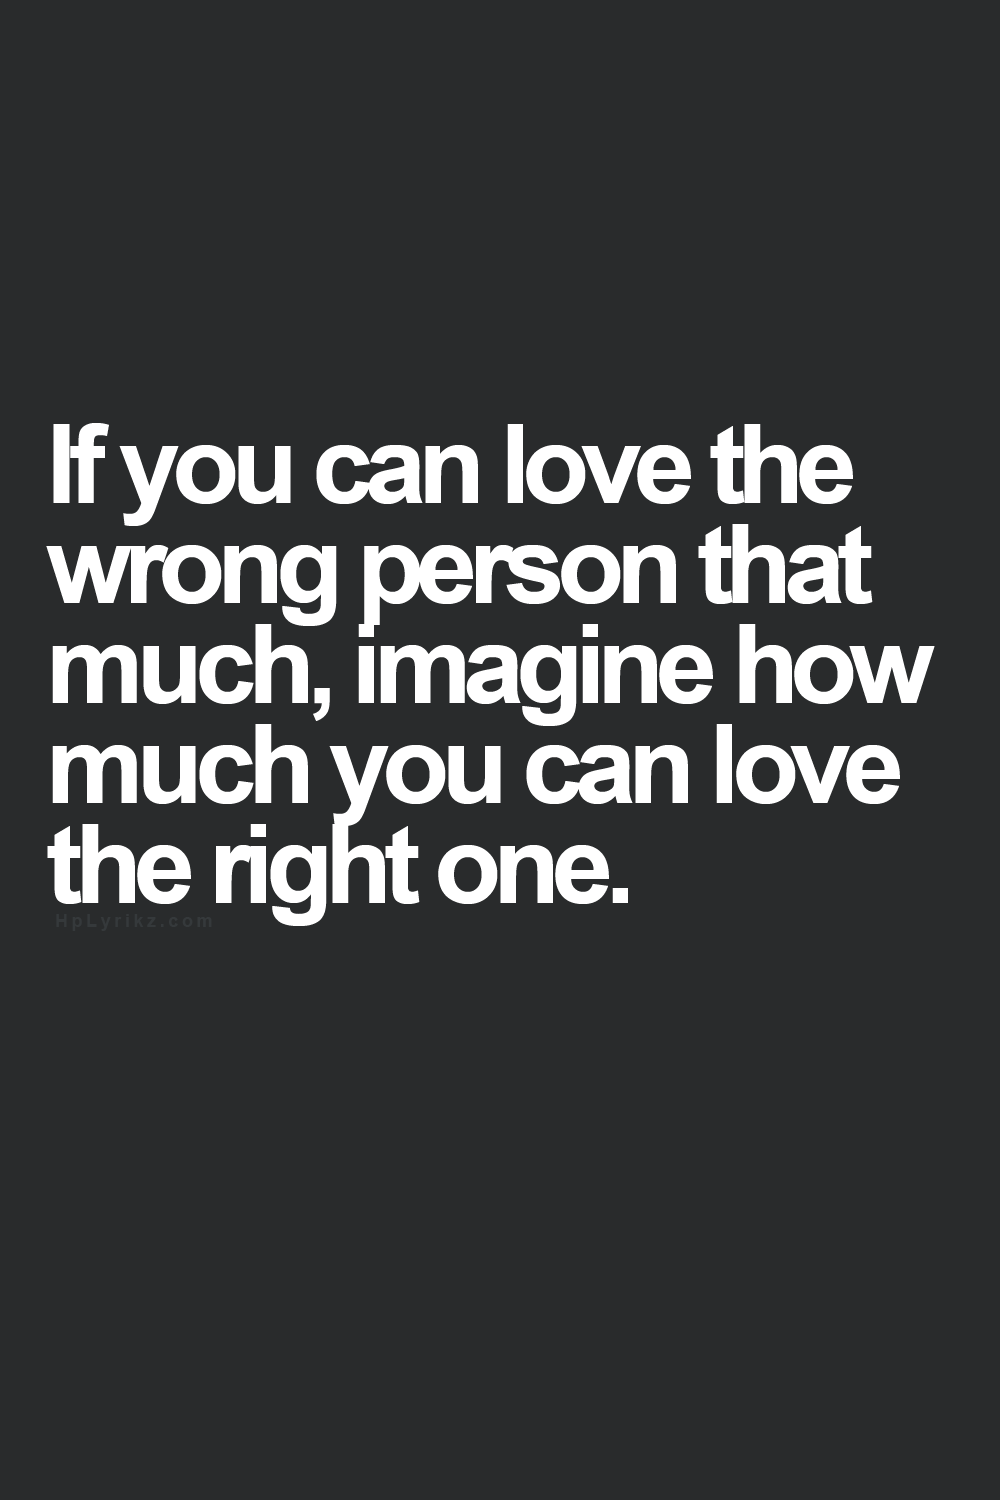 Finding Love Quotes: Finally Finding Love Quotes. QuotesGram